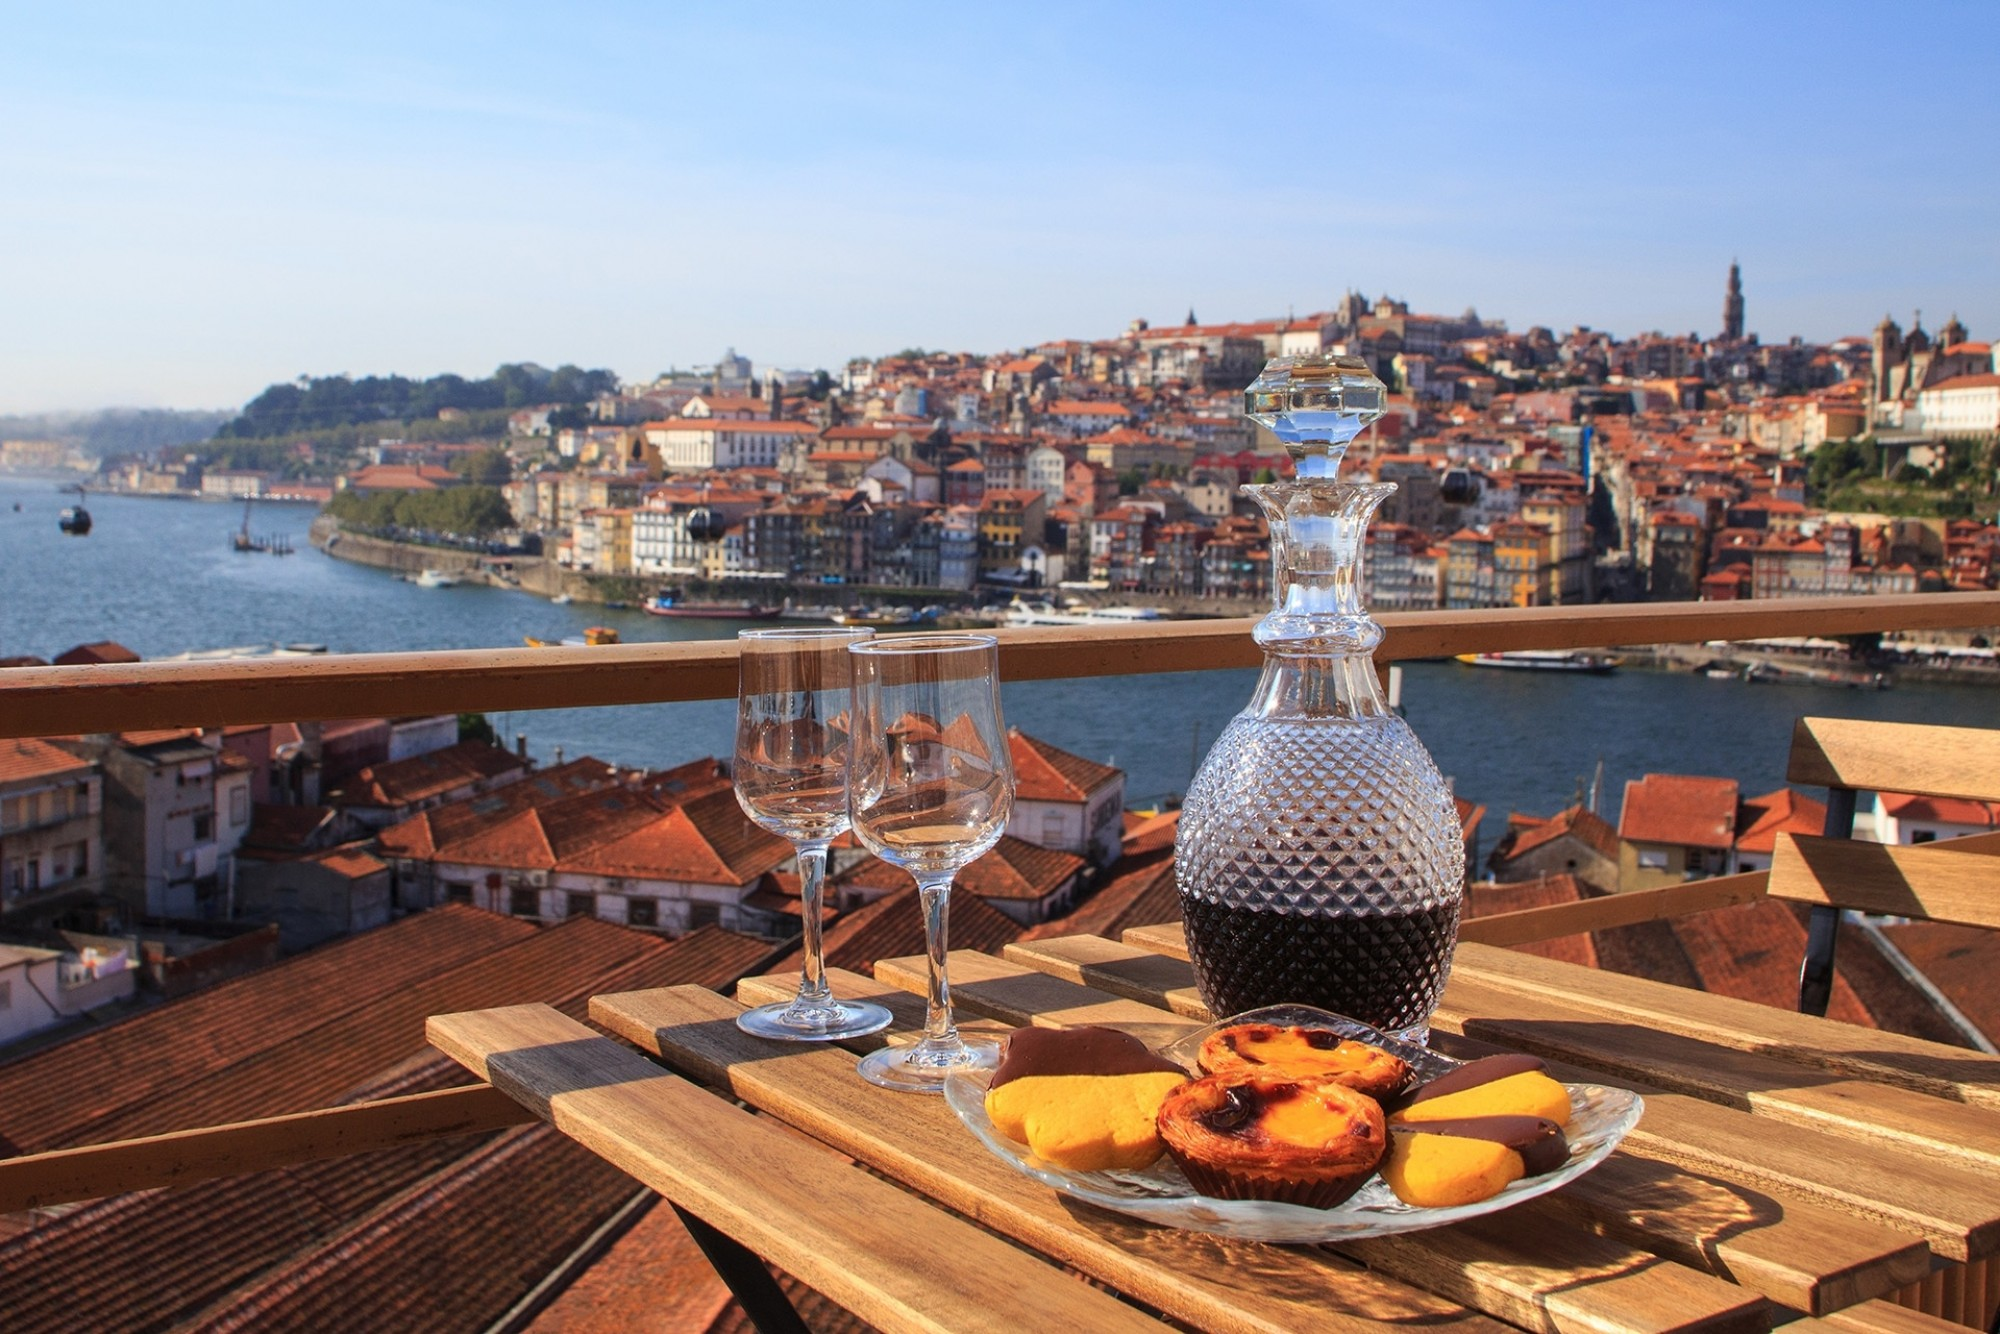 Table-with-view-a-wonderful-view-over-the-river-in-Porto-Portugal